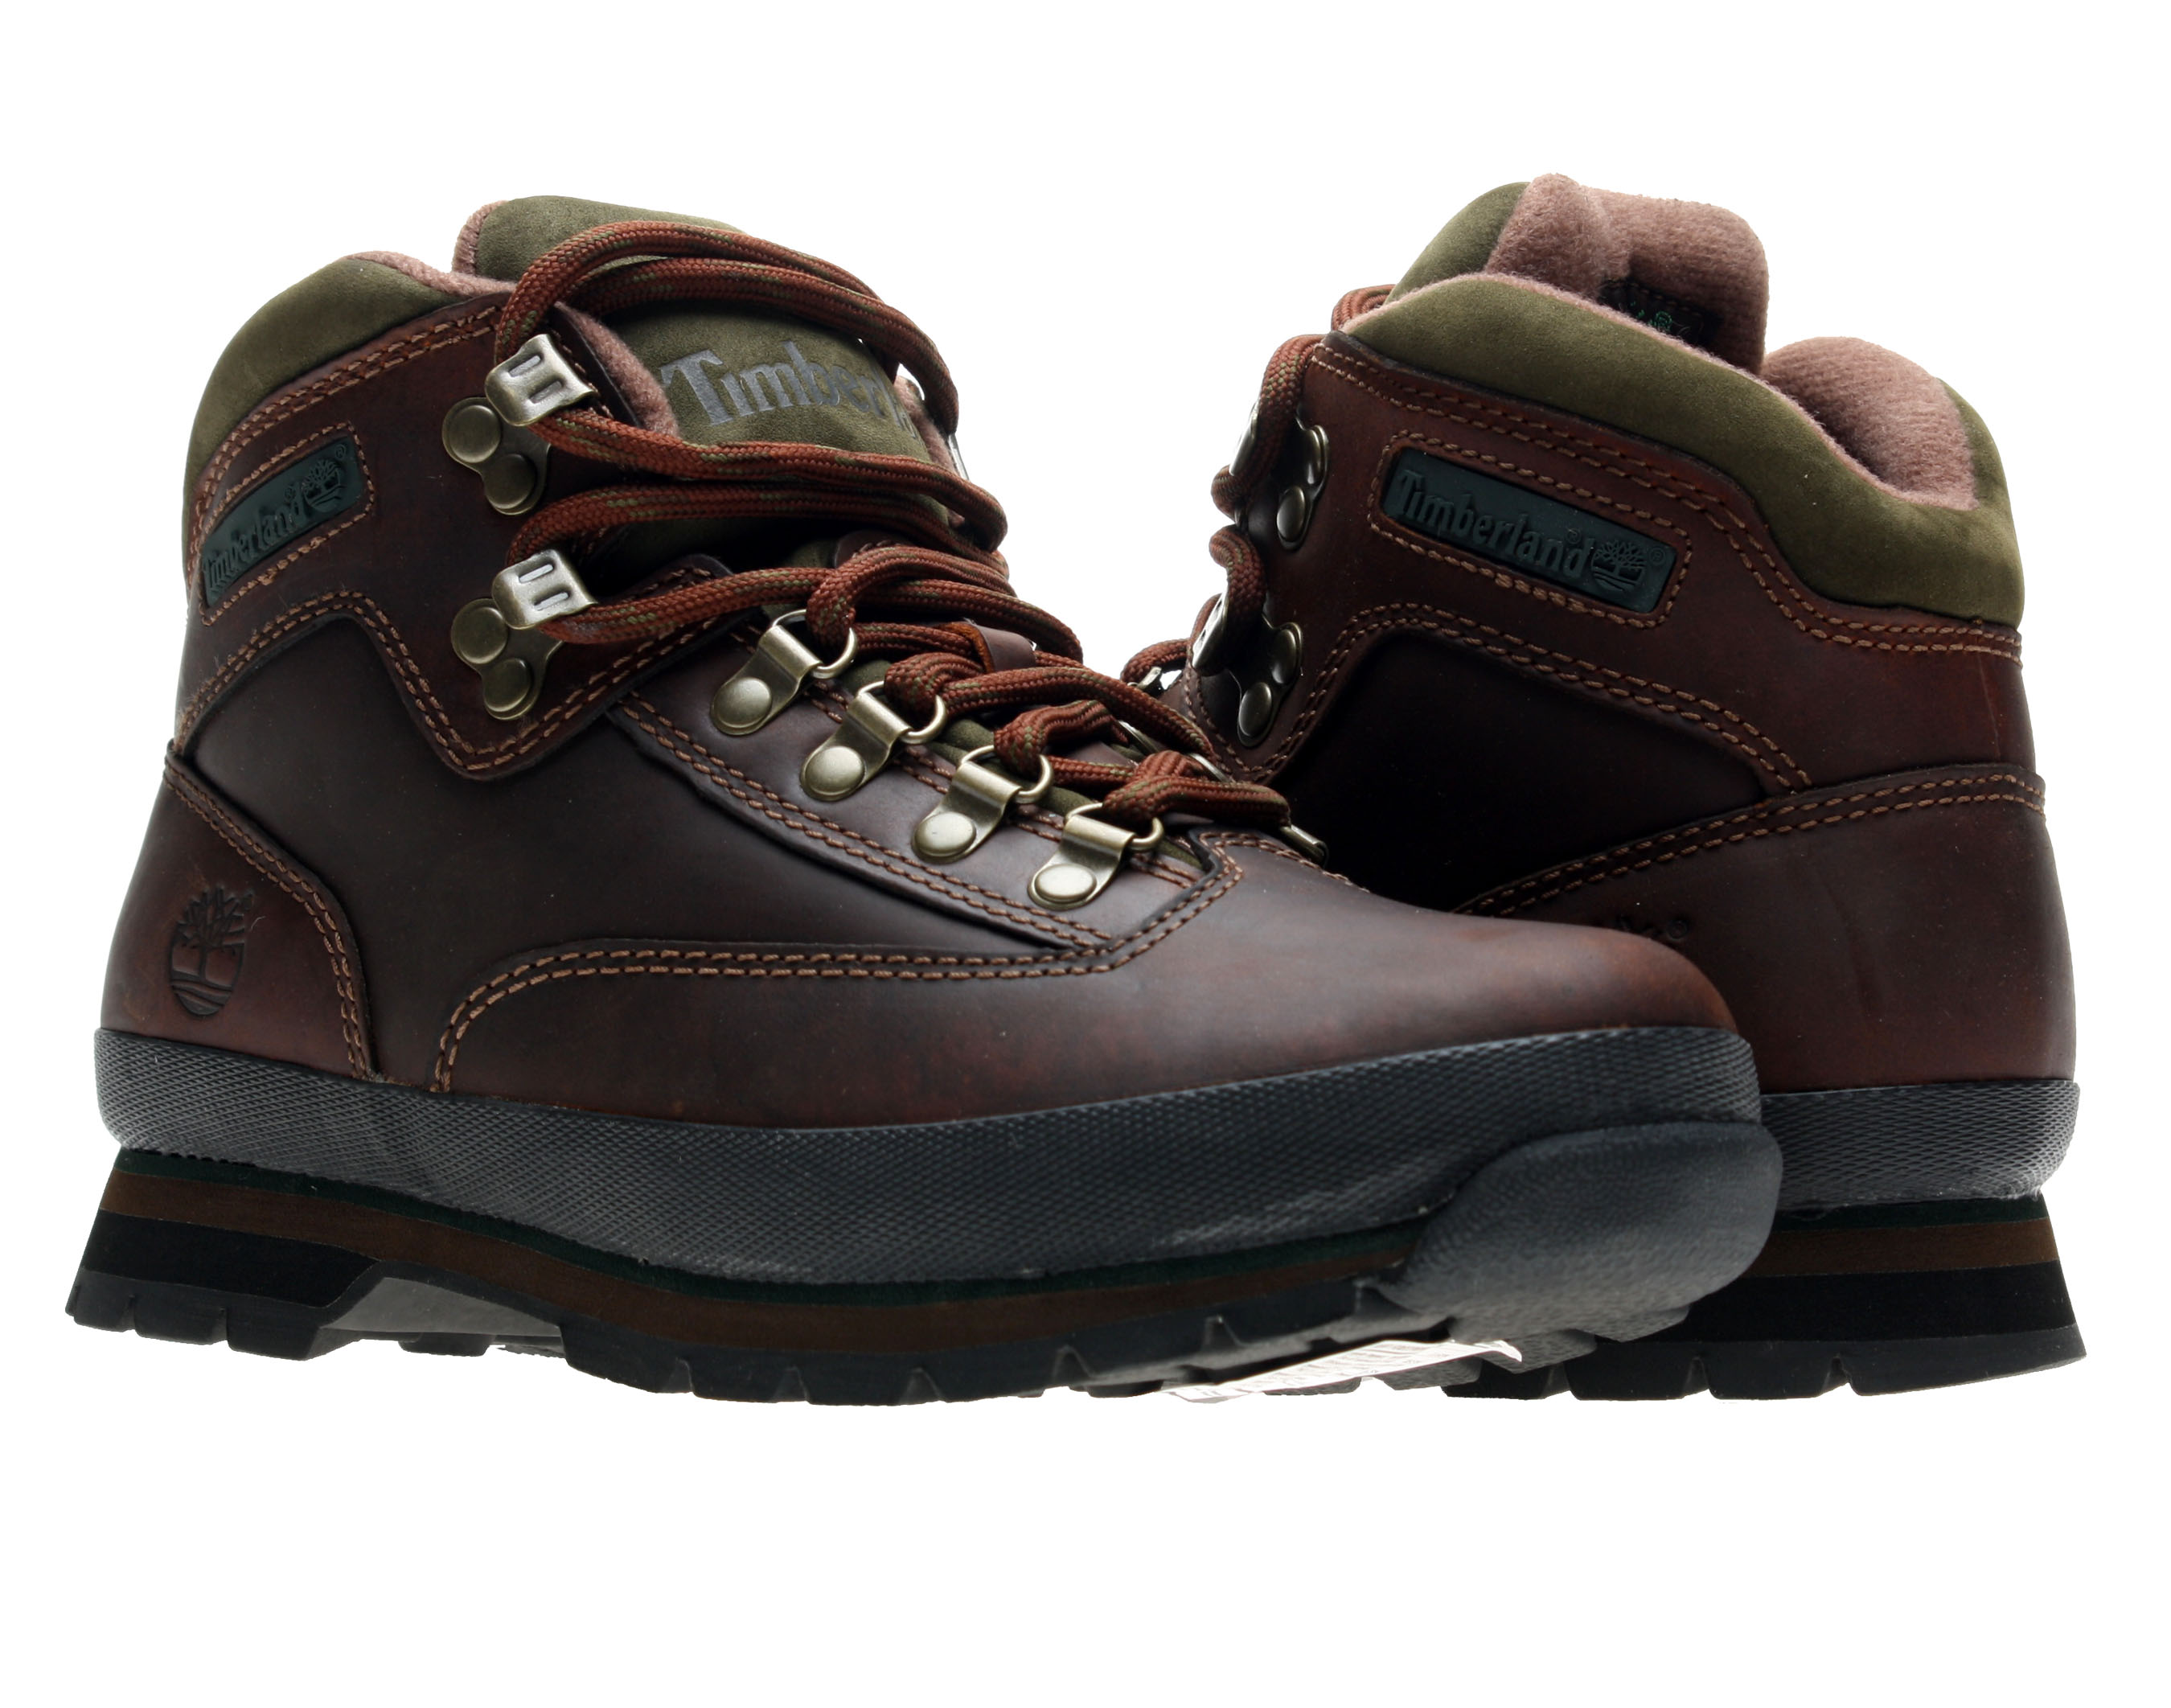 Timberland Euro Hiker Oiled Leather Brown Men's Boots [95100] Size 13 by Timberland